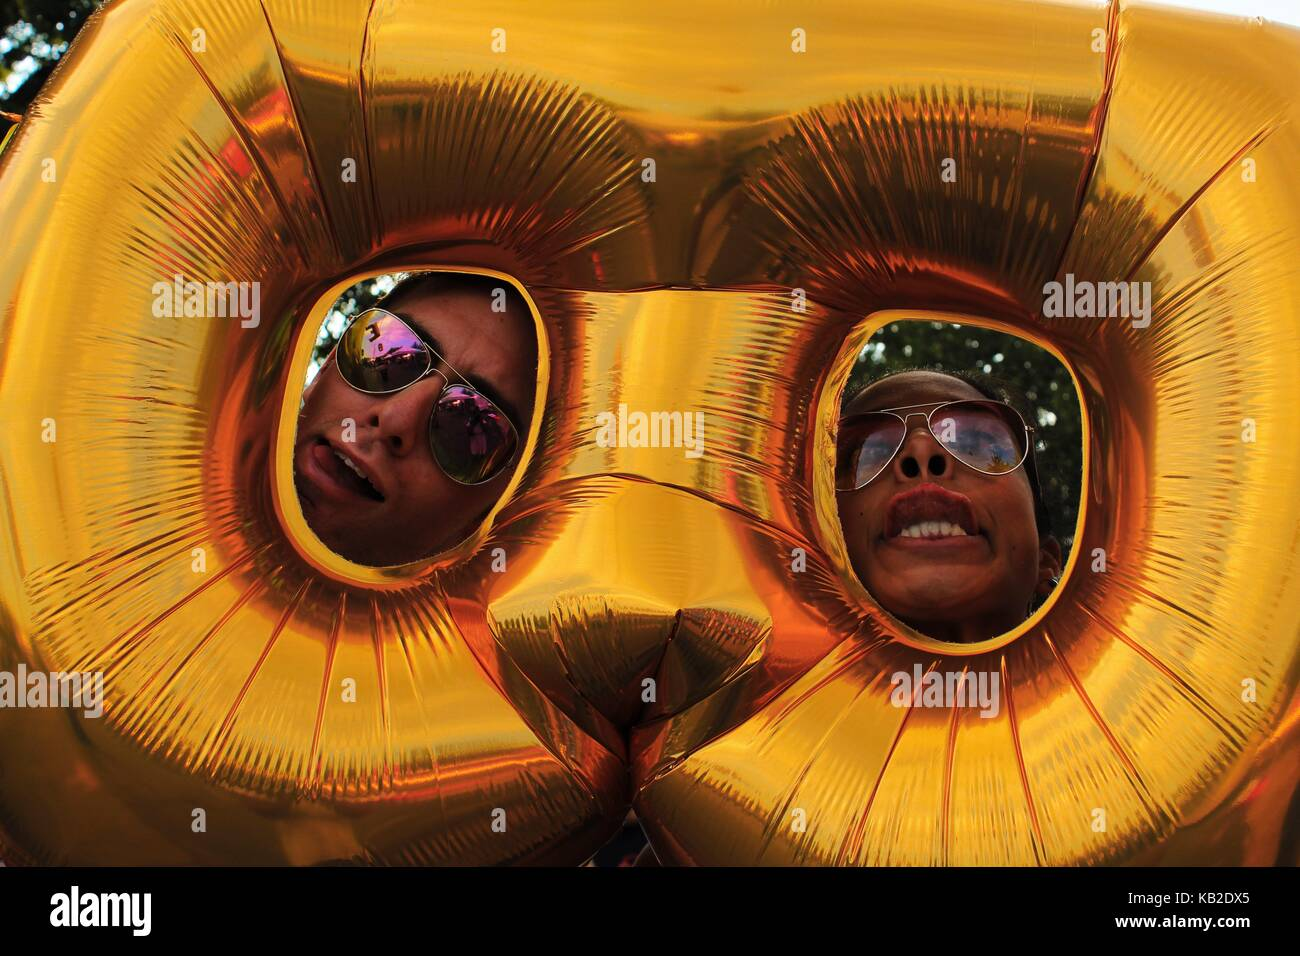 Silly Faces in a balloon - Stock Image